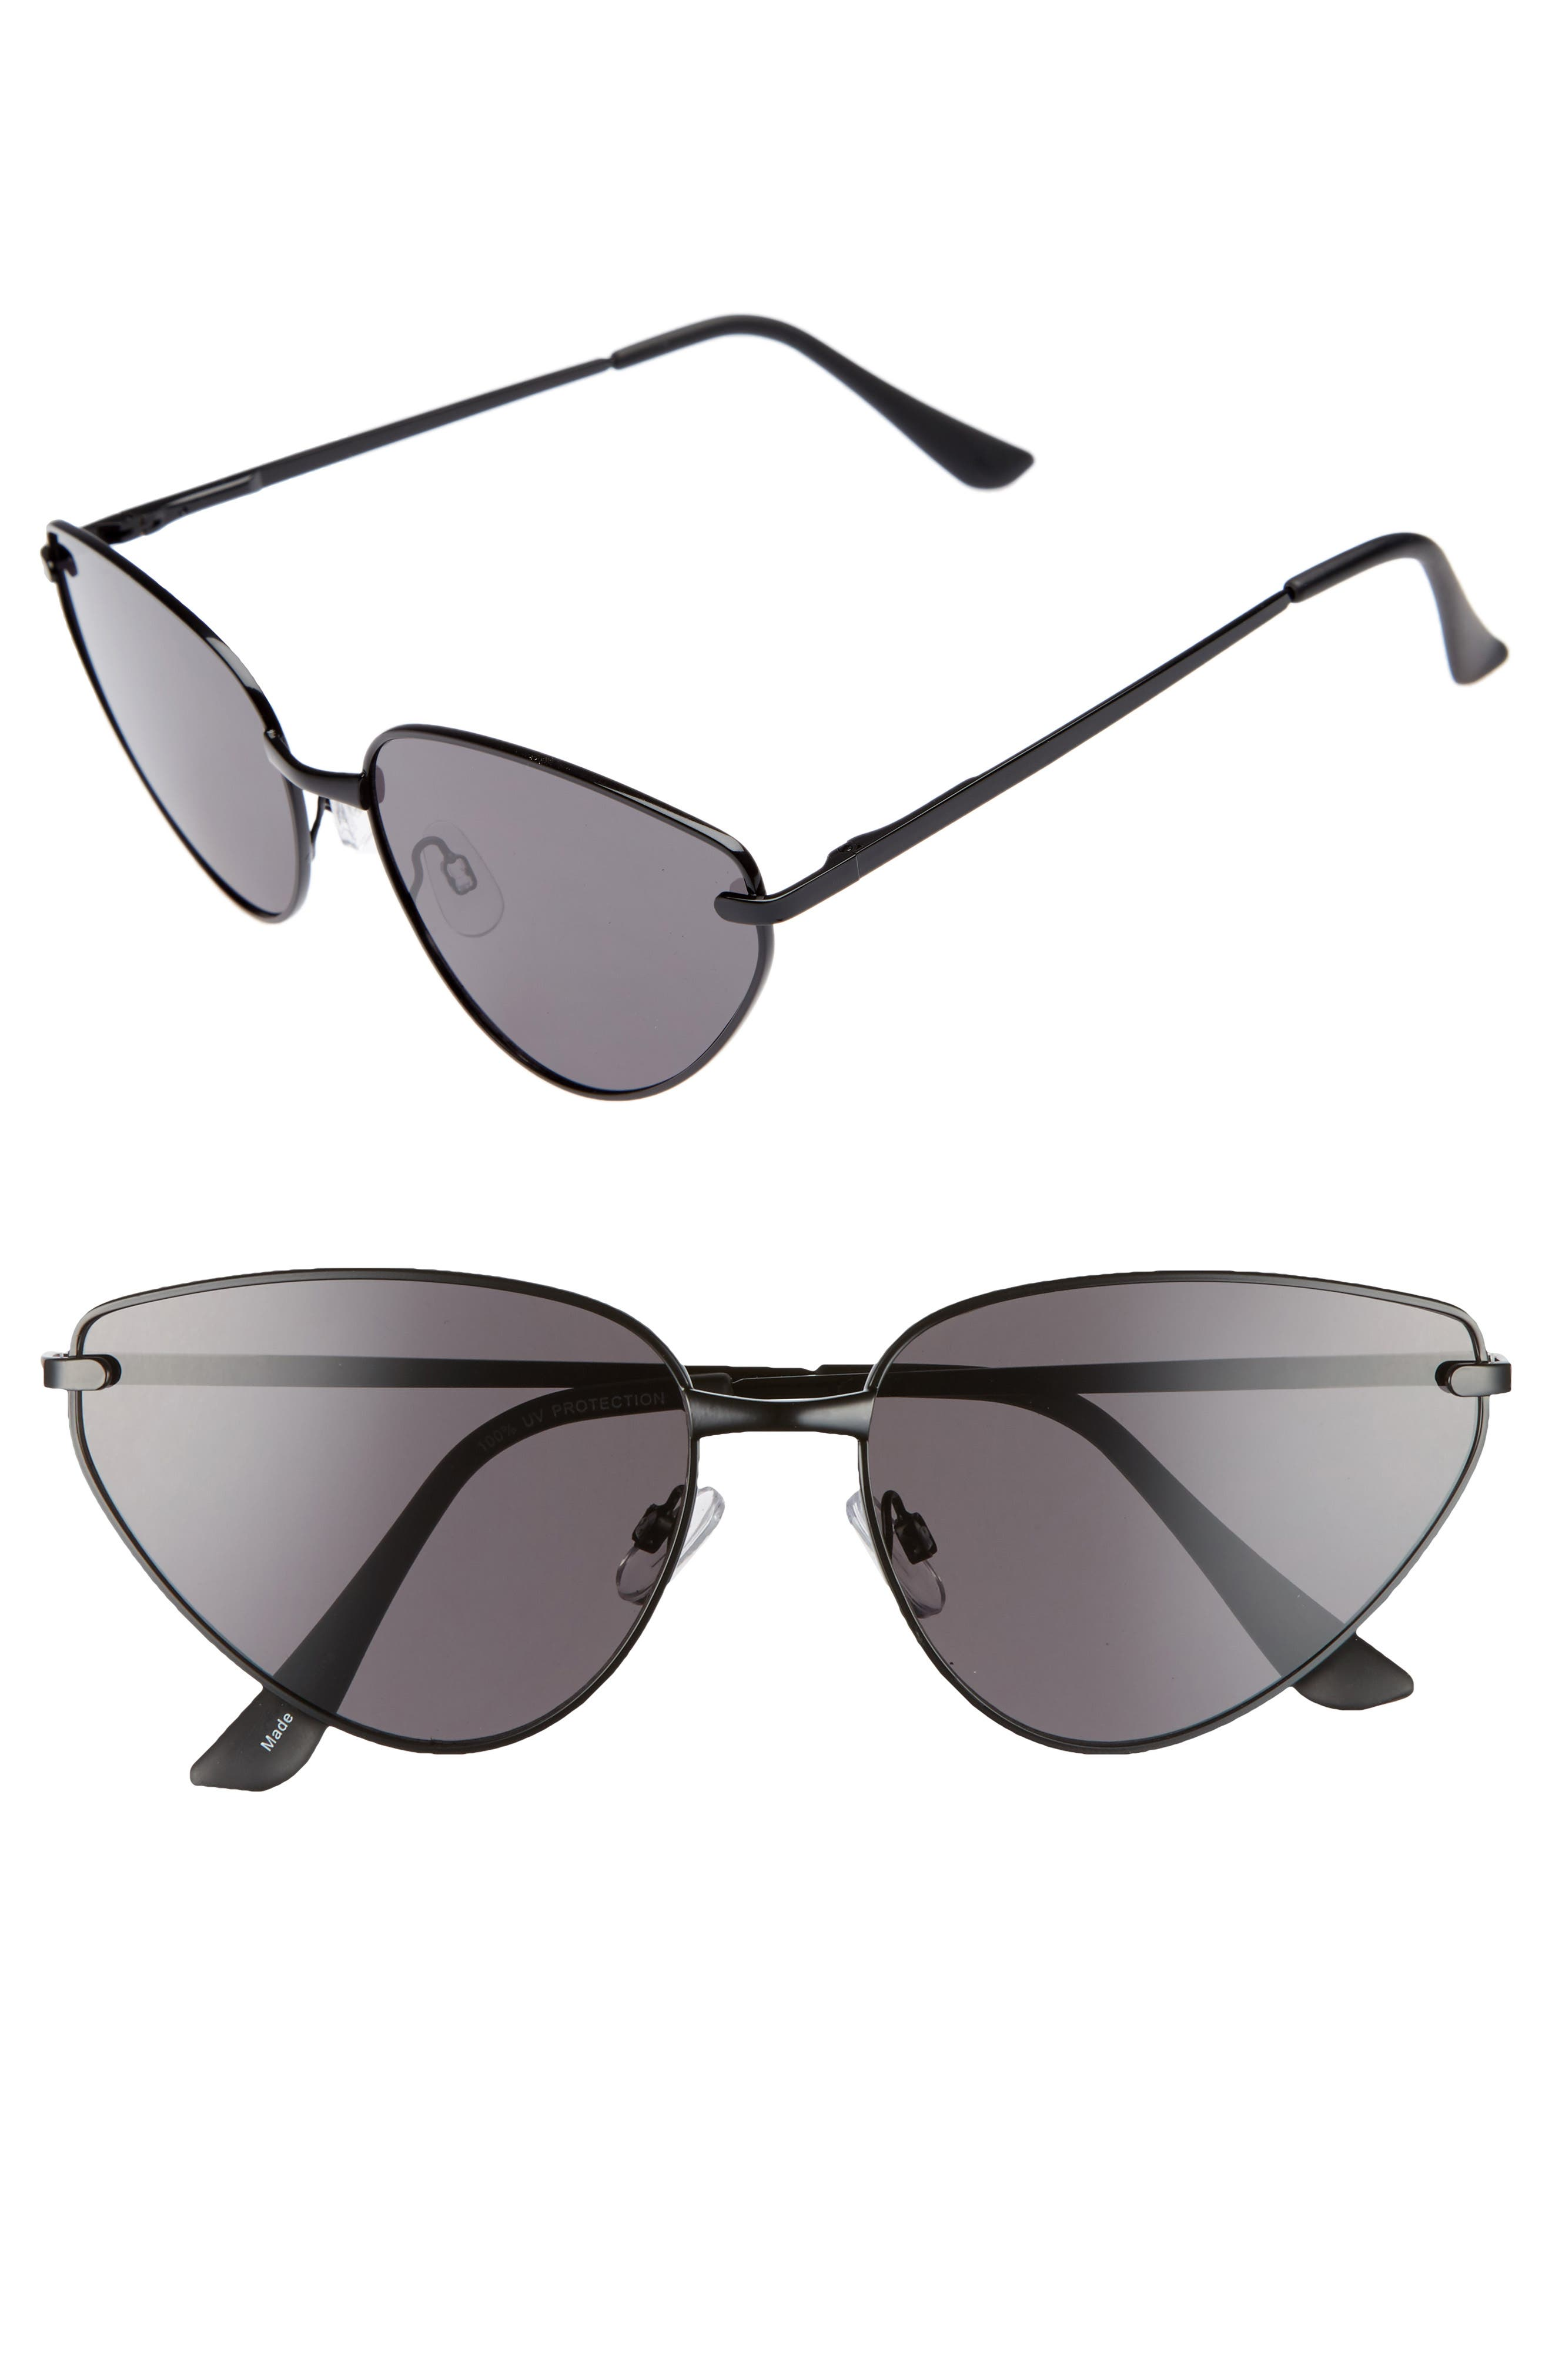 60mm Exaggerated Cat Eye Sunglasses,                         Main,                         color, Black